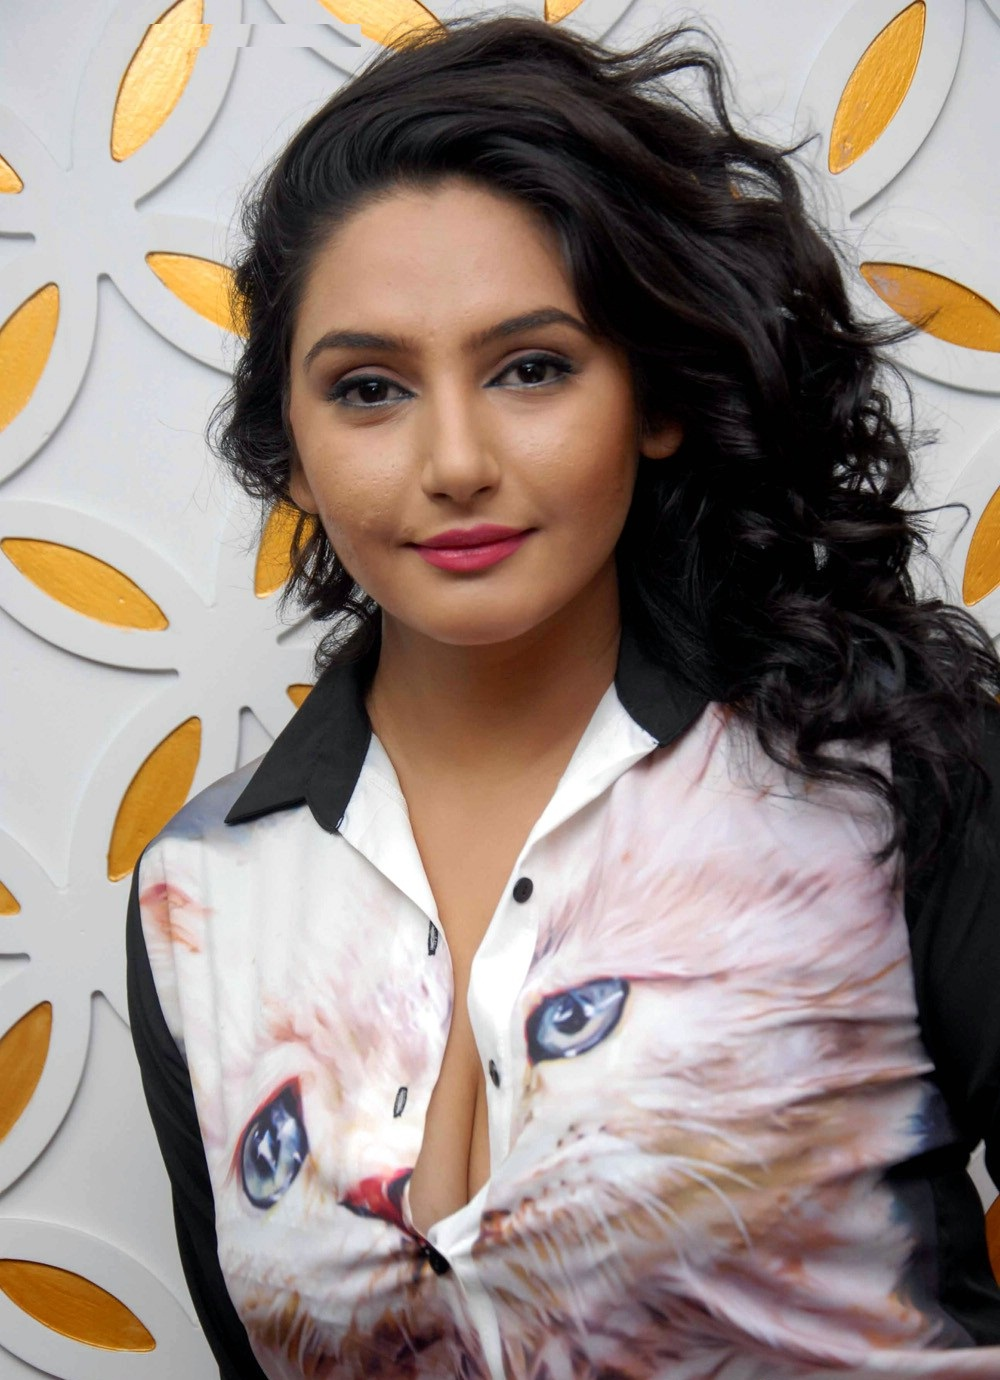 Rajput Wallpaper Hd Download Ragini Dwivedi Hot Amp Sizzling Pictures Photos Amp Hd Images